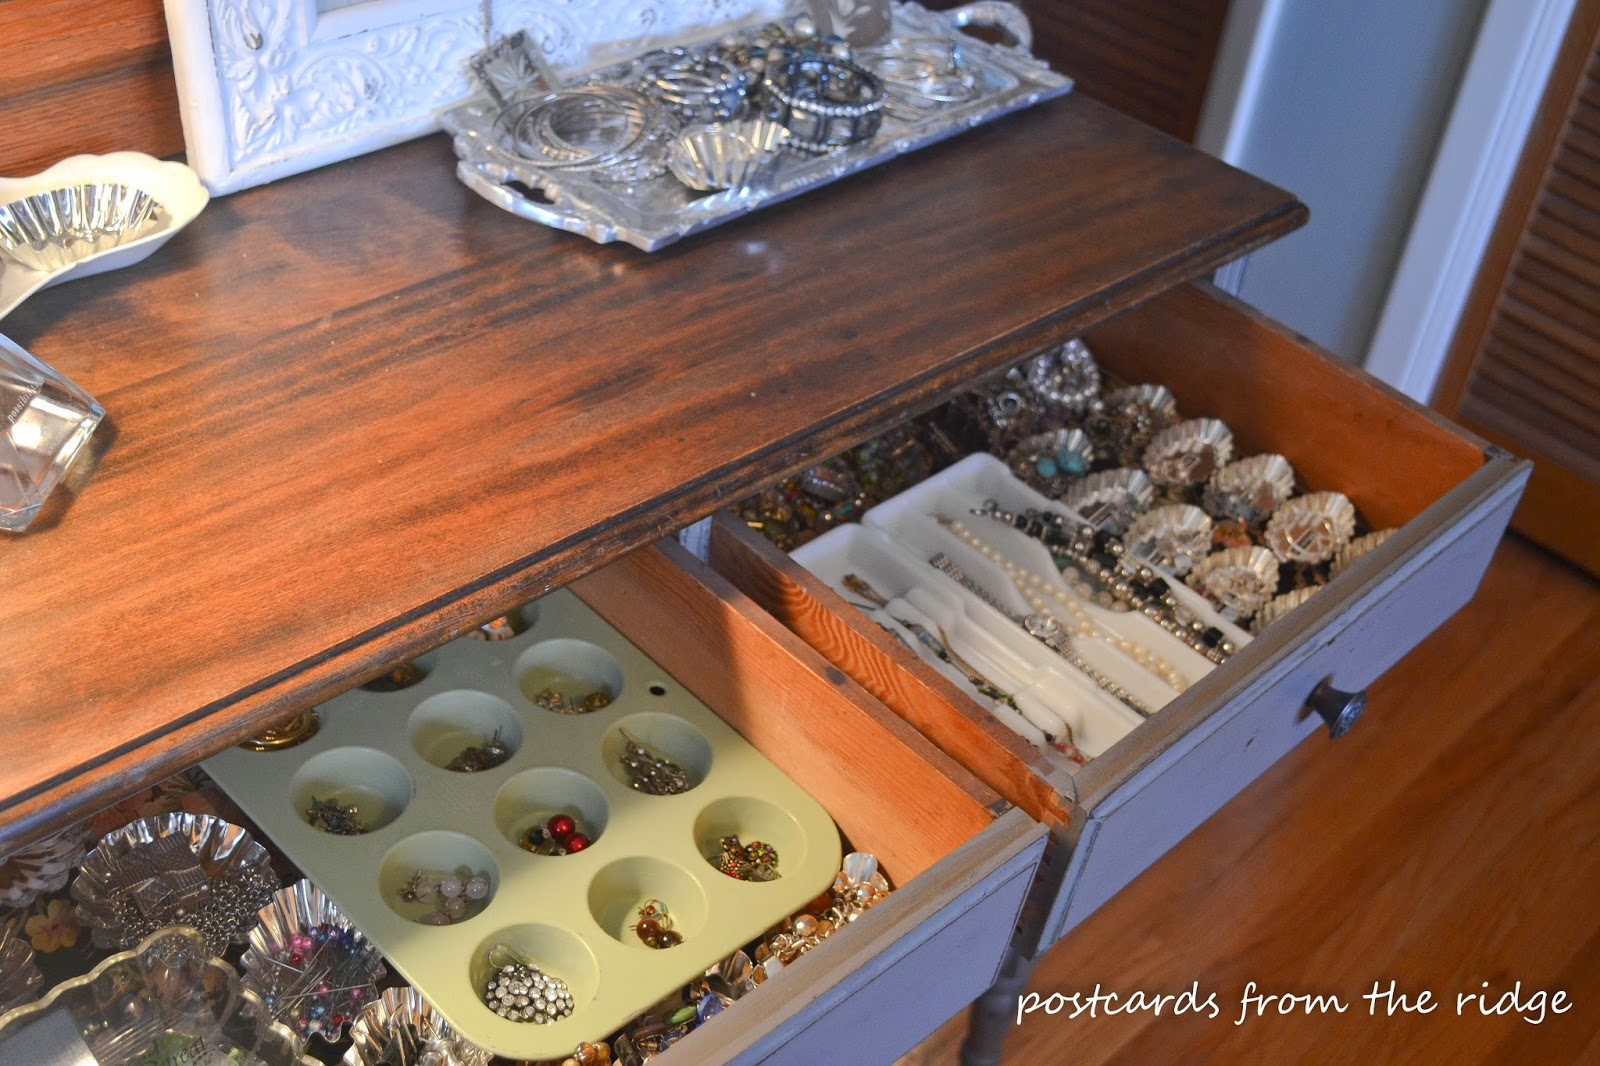 Vintage tart tins, muffin pans, and other items repurposed for jewelry organization.  Very clever!